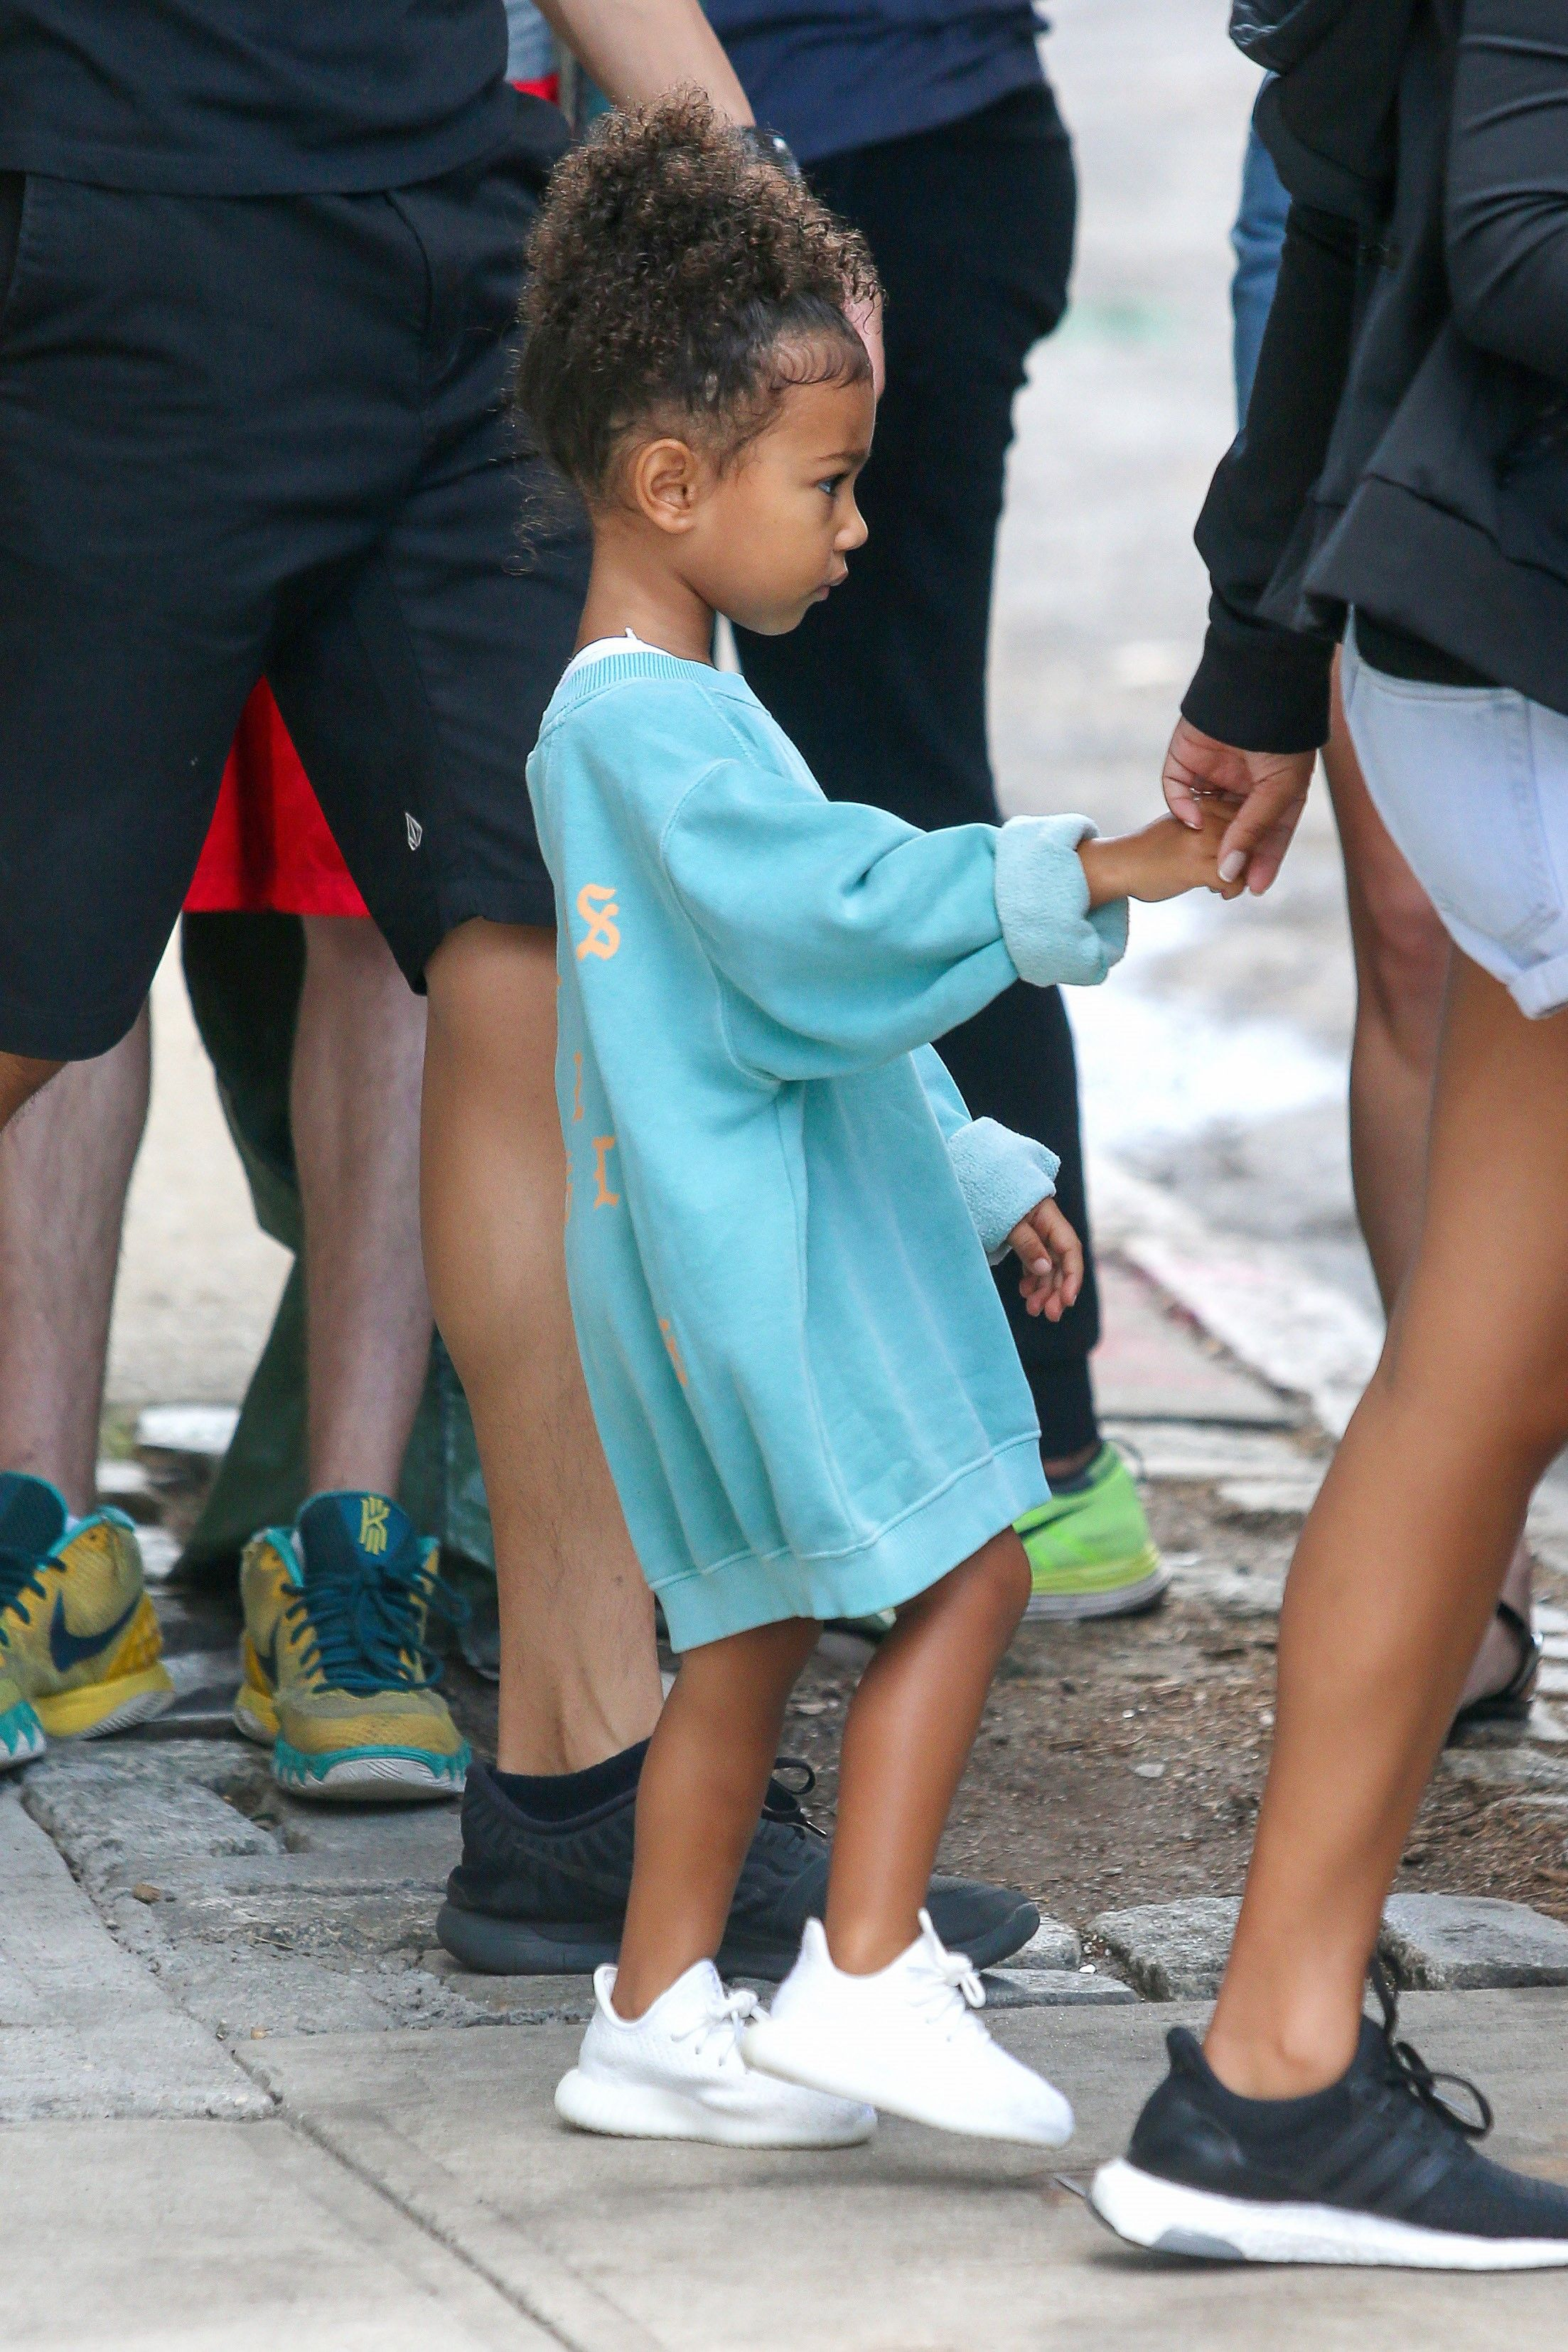 north west just rocked the coolest adidas fit for her 5th birthday